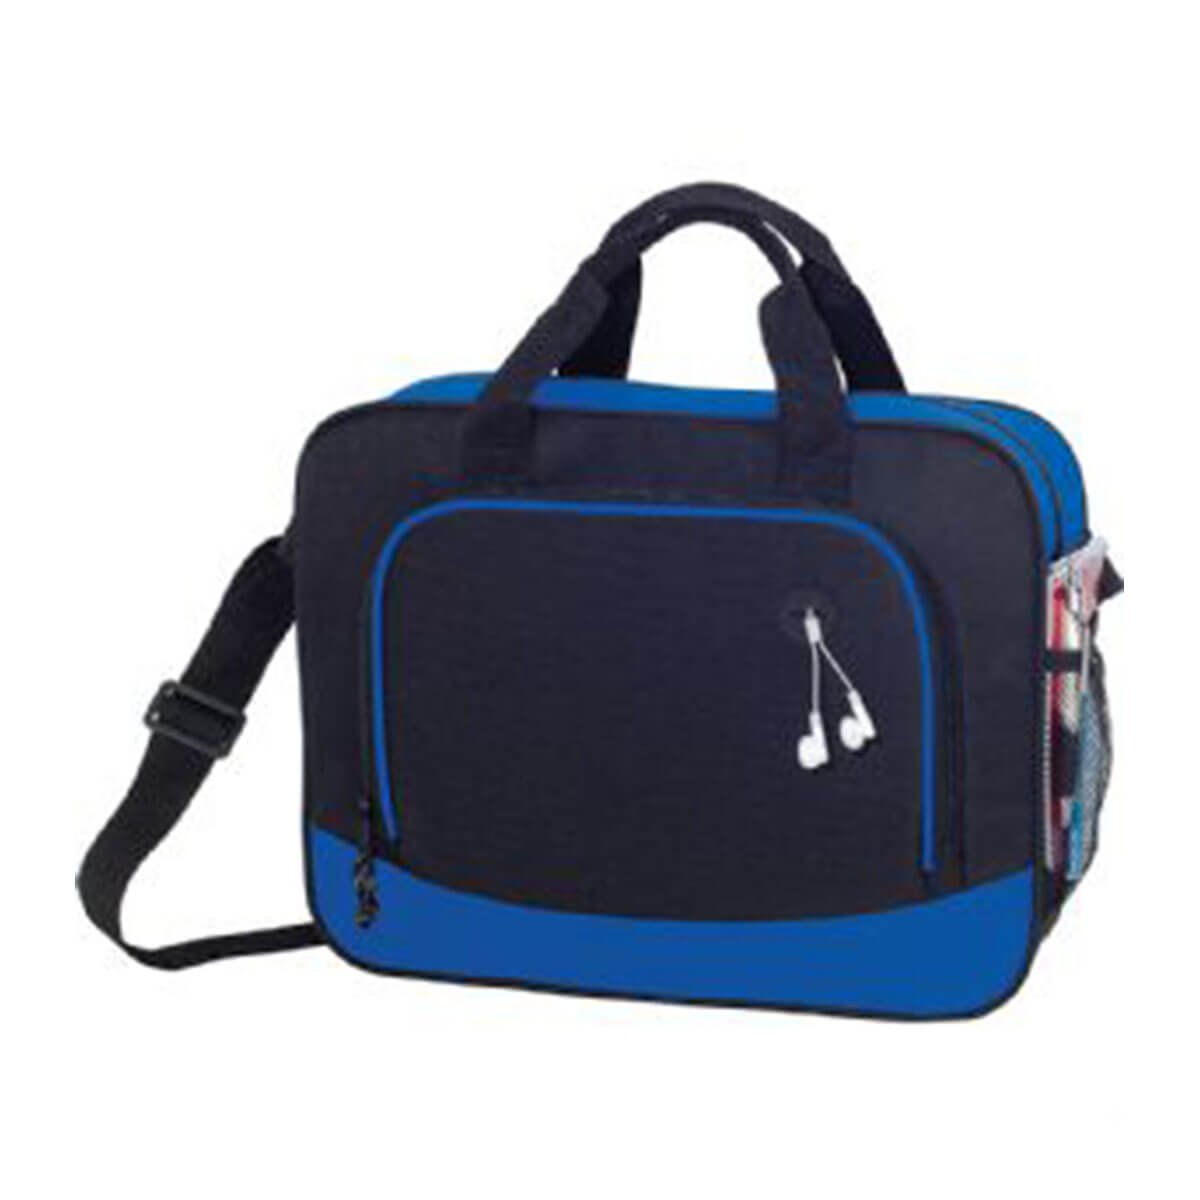 Barracuda Business Briefcase-Black/Blue